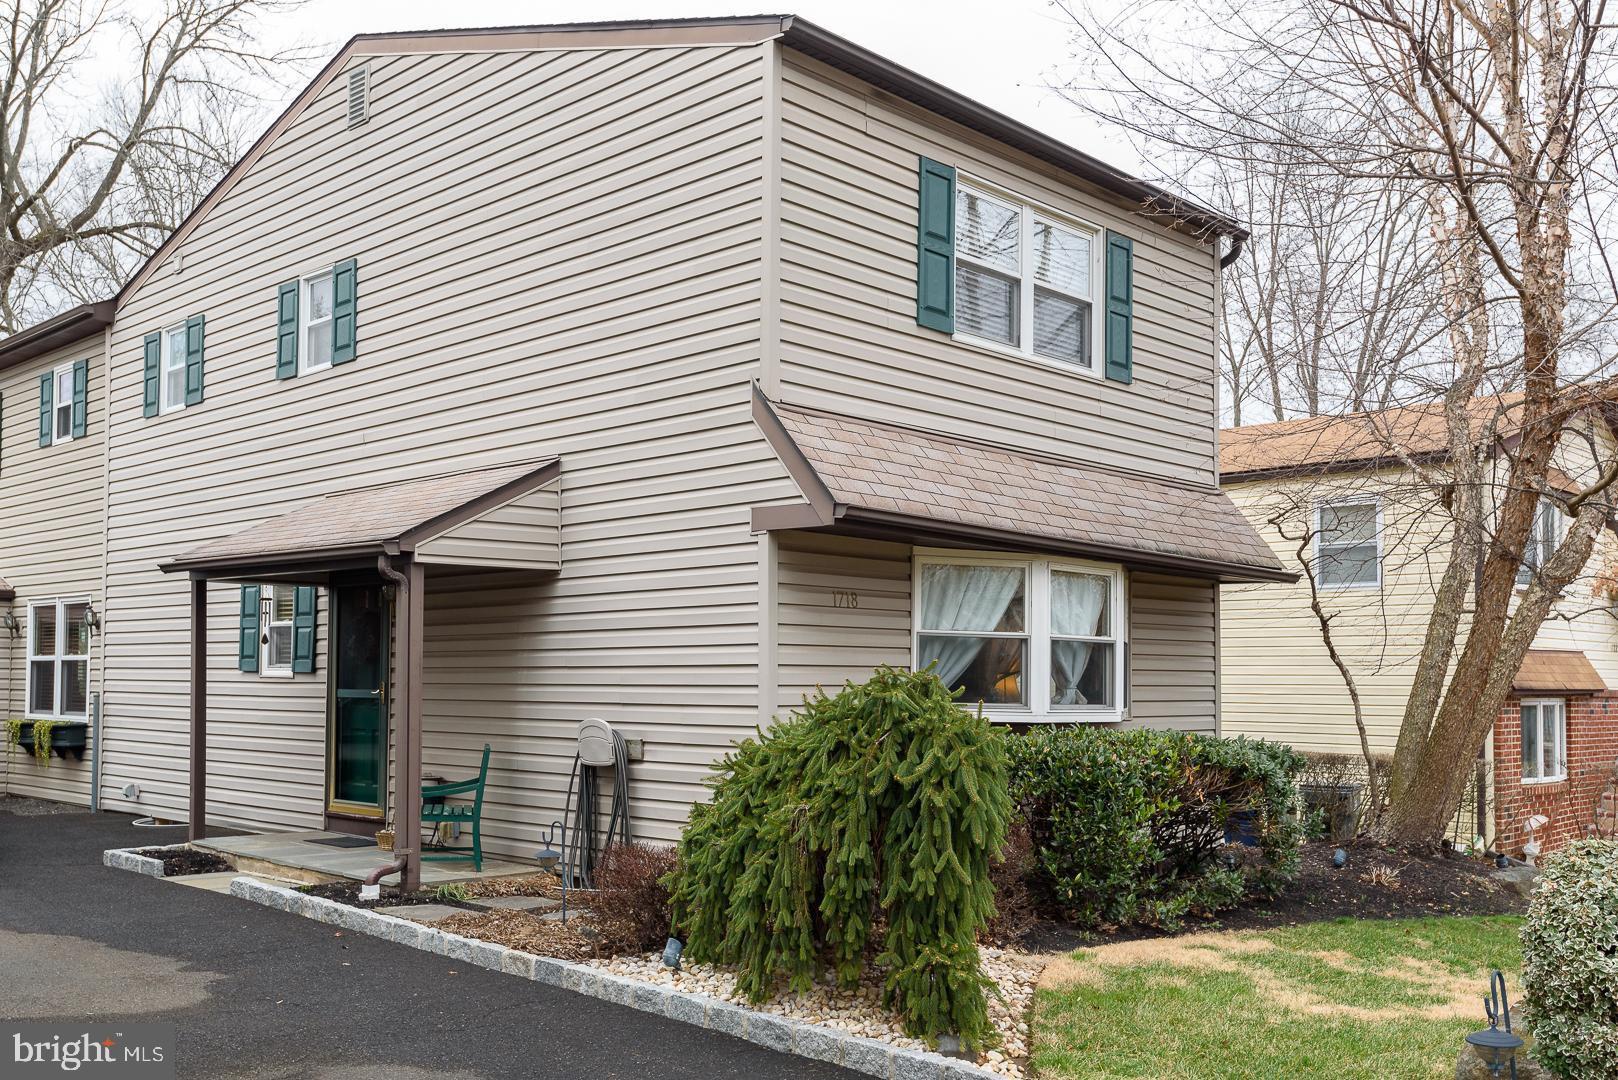 1718 RIDGEWAY AVENUE, WILLOW GROVE, PA 19090